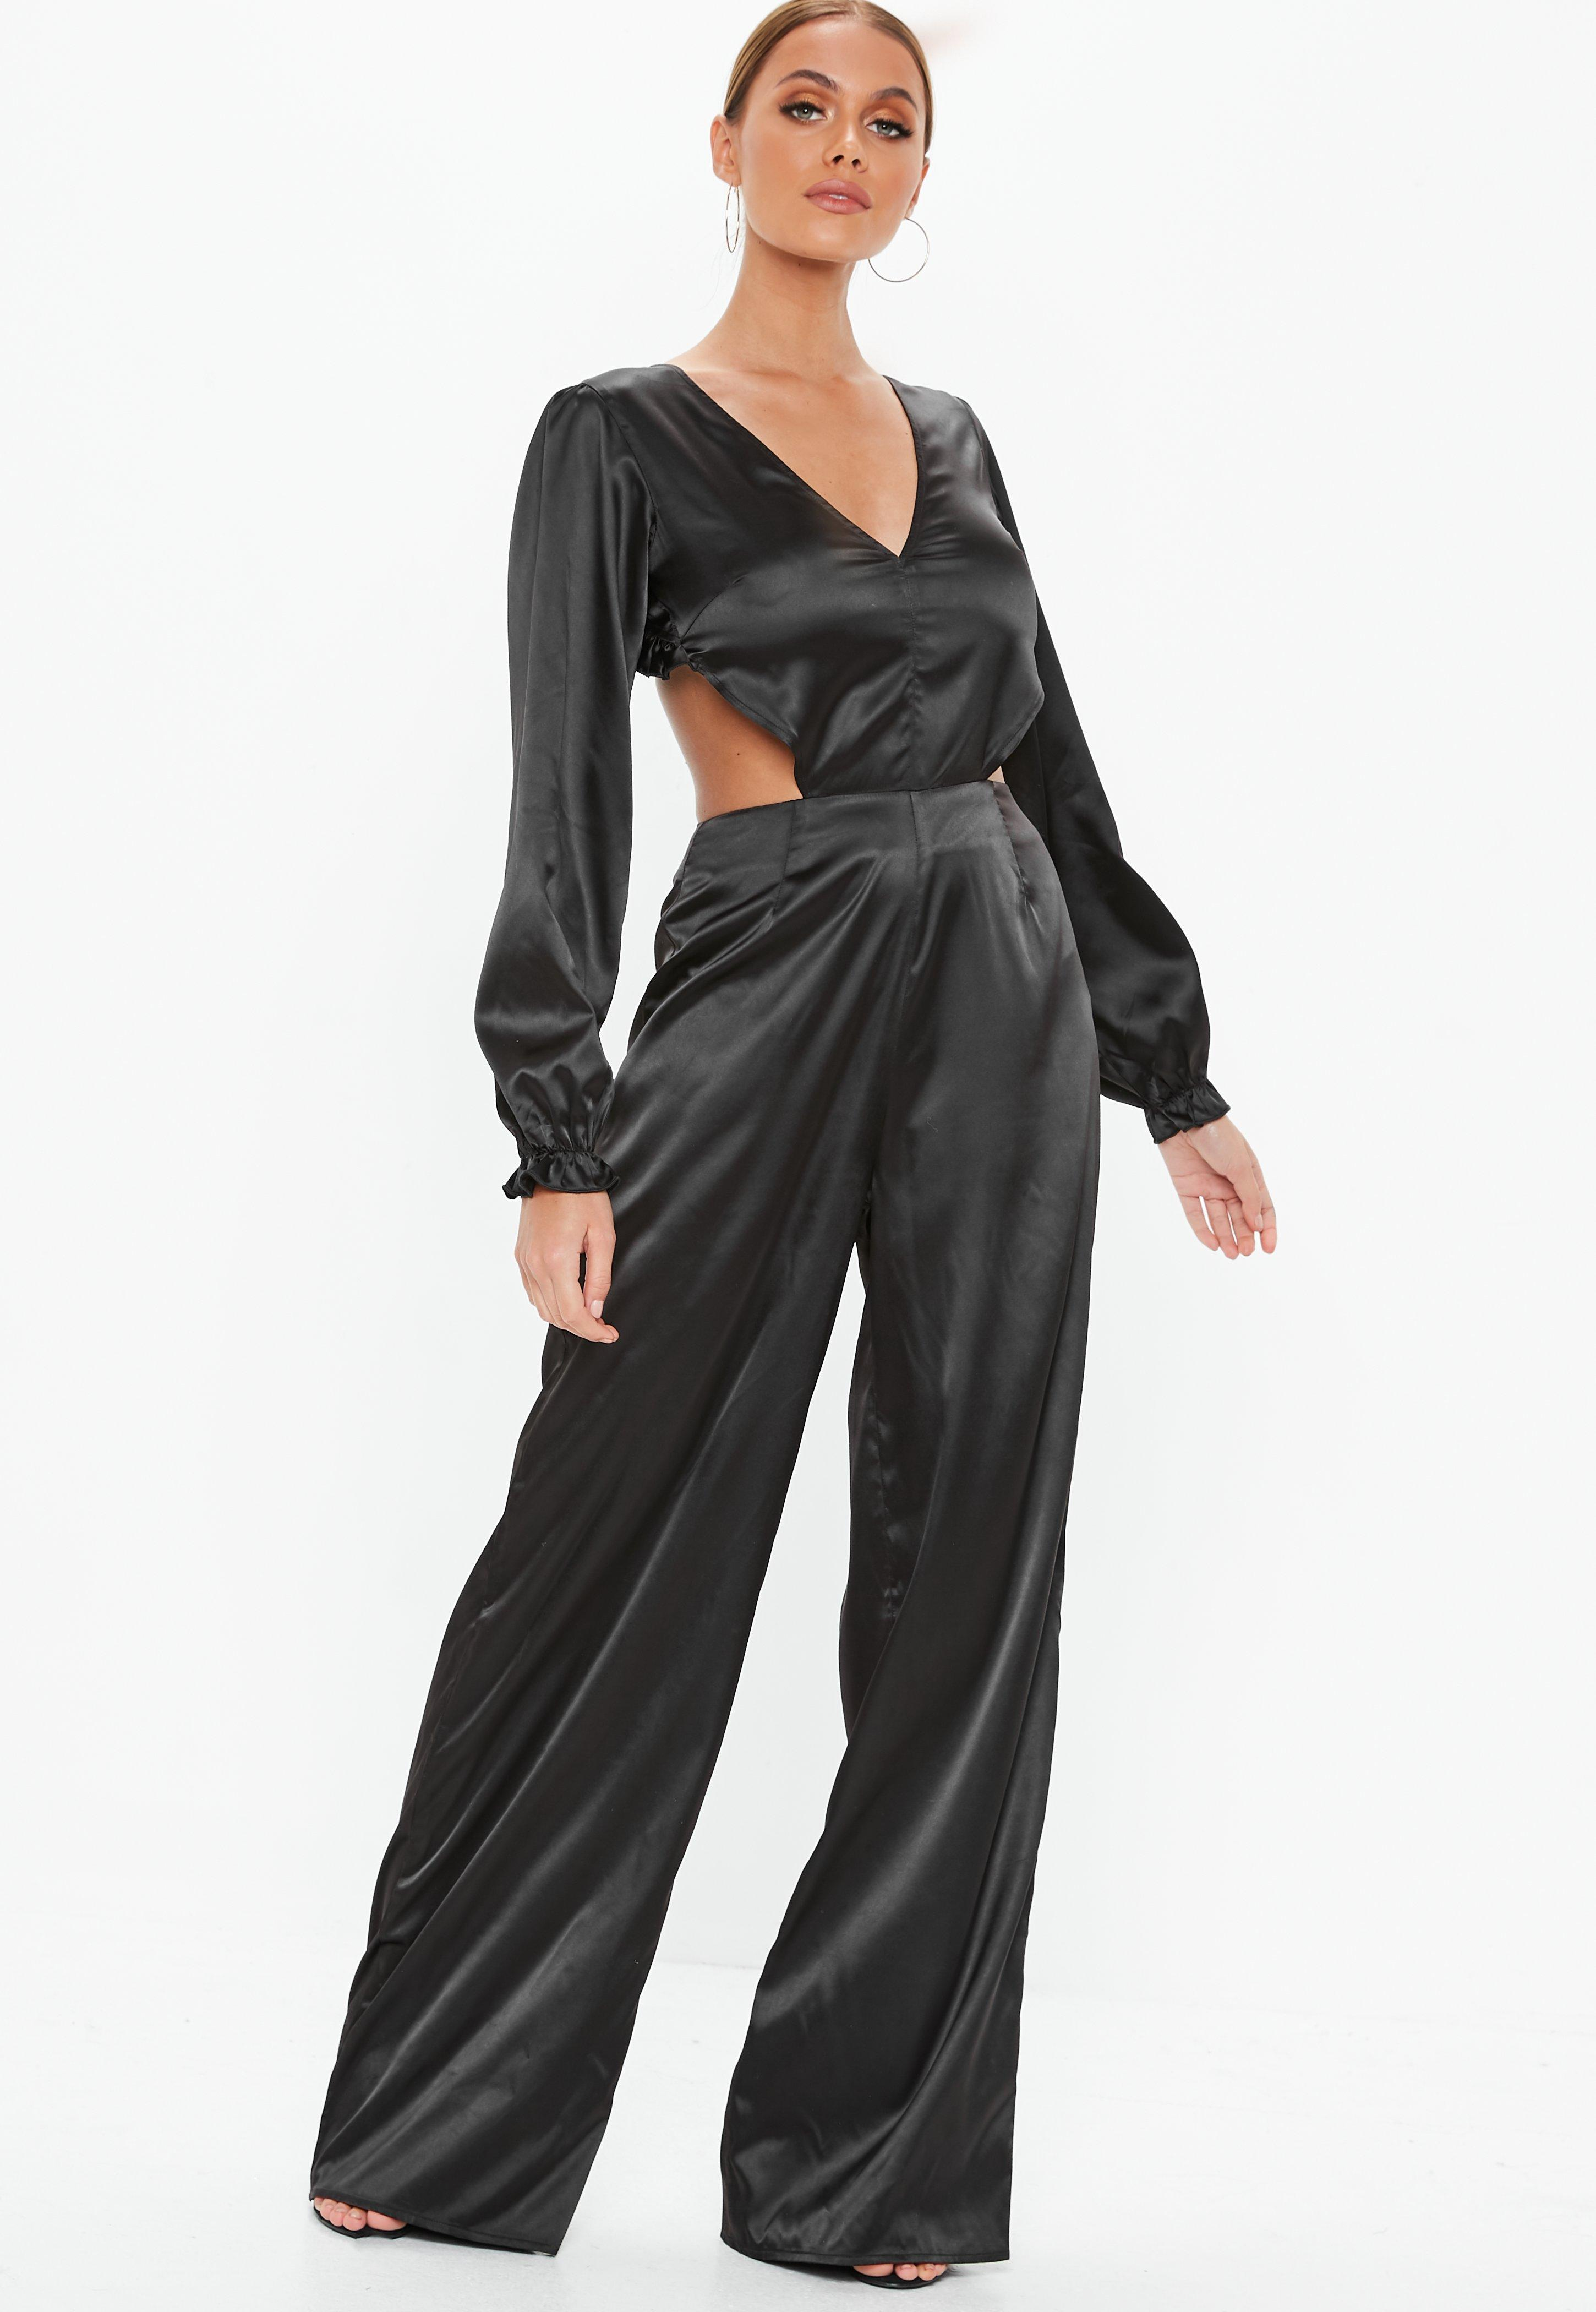 2302916ca268 Missguided - Black Satin Frill Open Back Jumpsuit - Lyst. View fullscreen